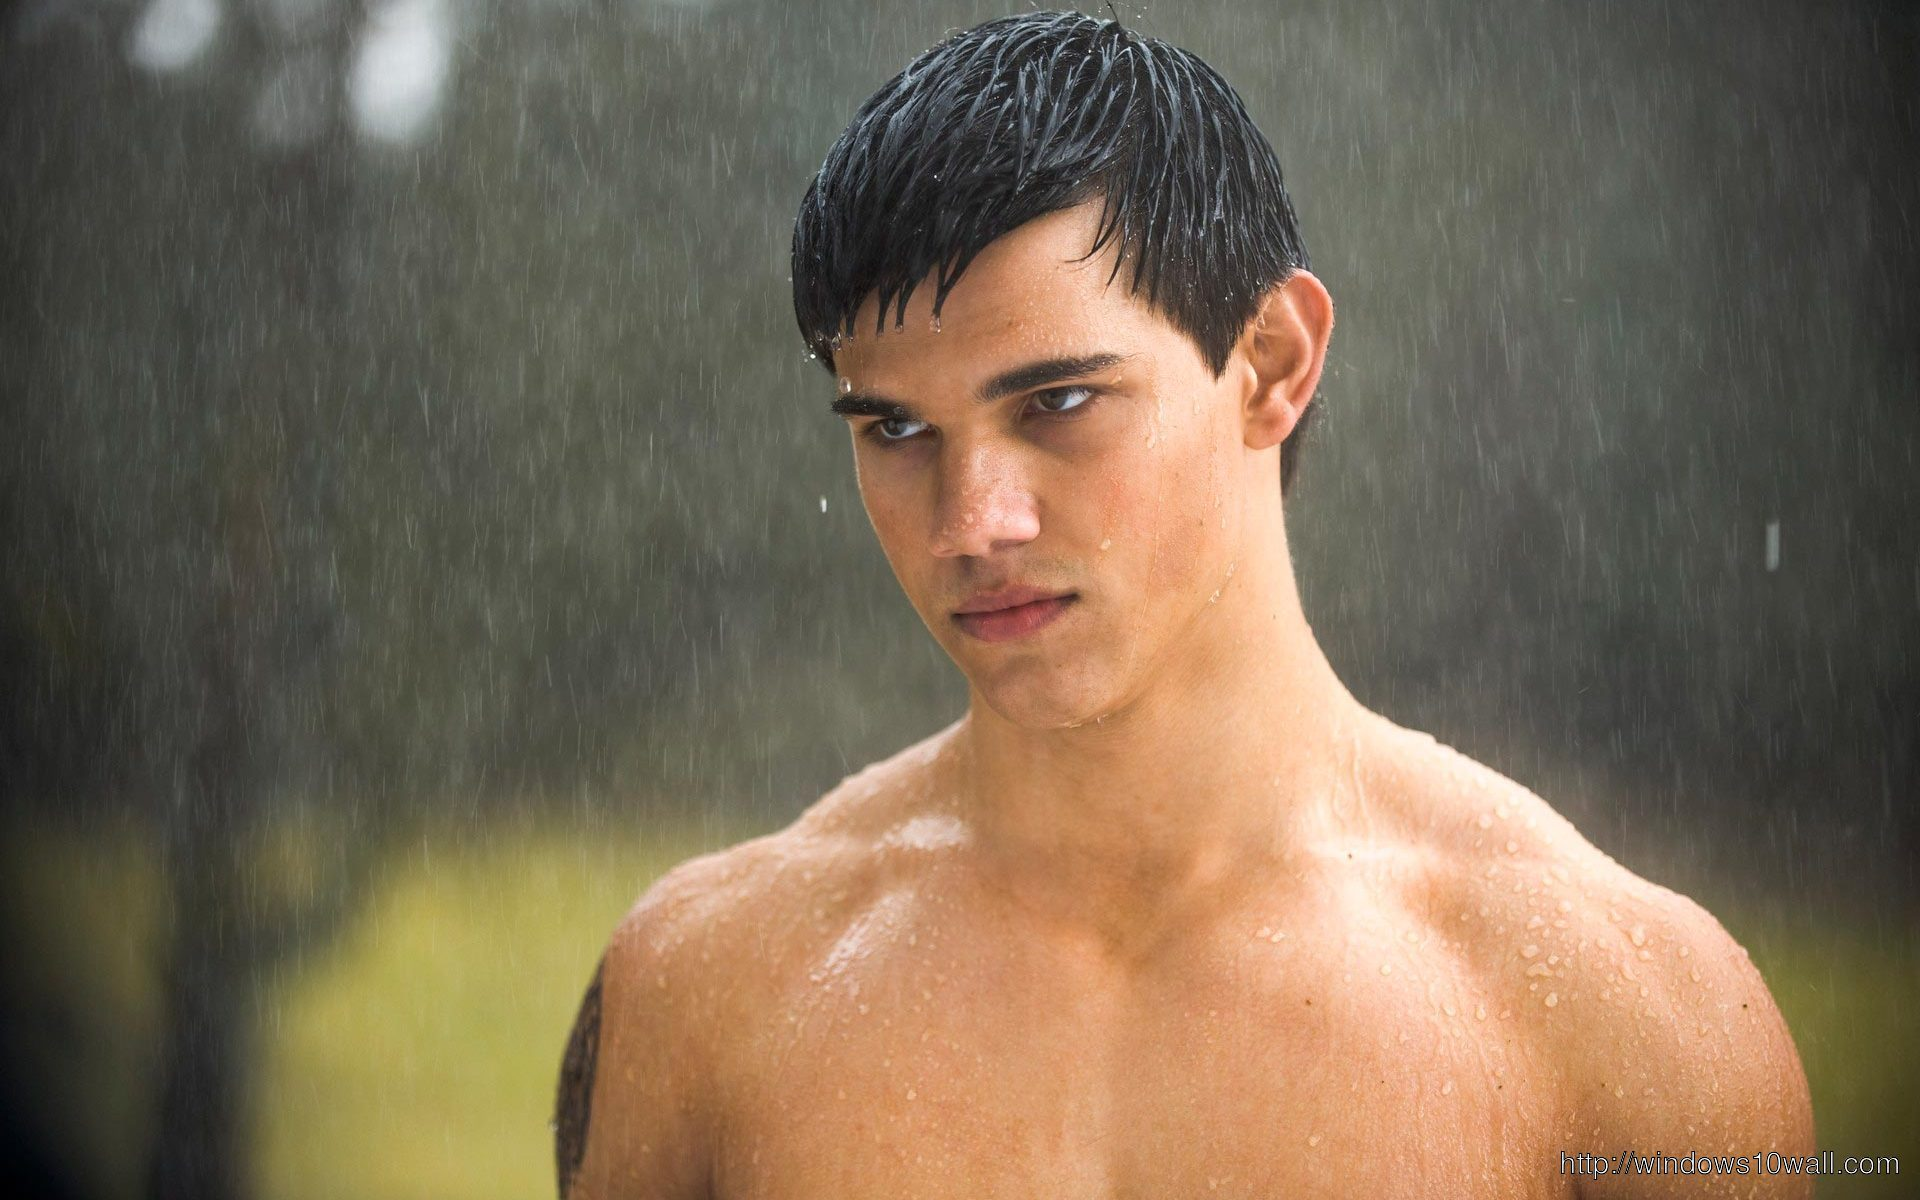 Taylor Lautner 1920x1200 Background Wallpaper